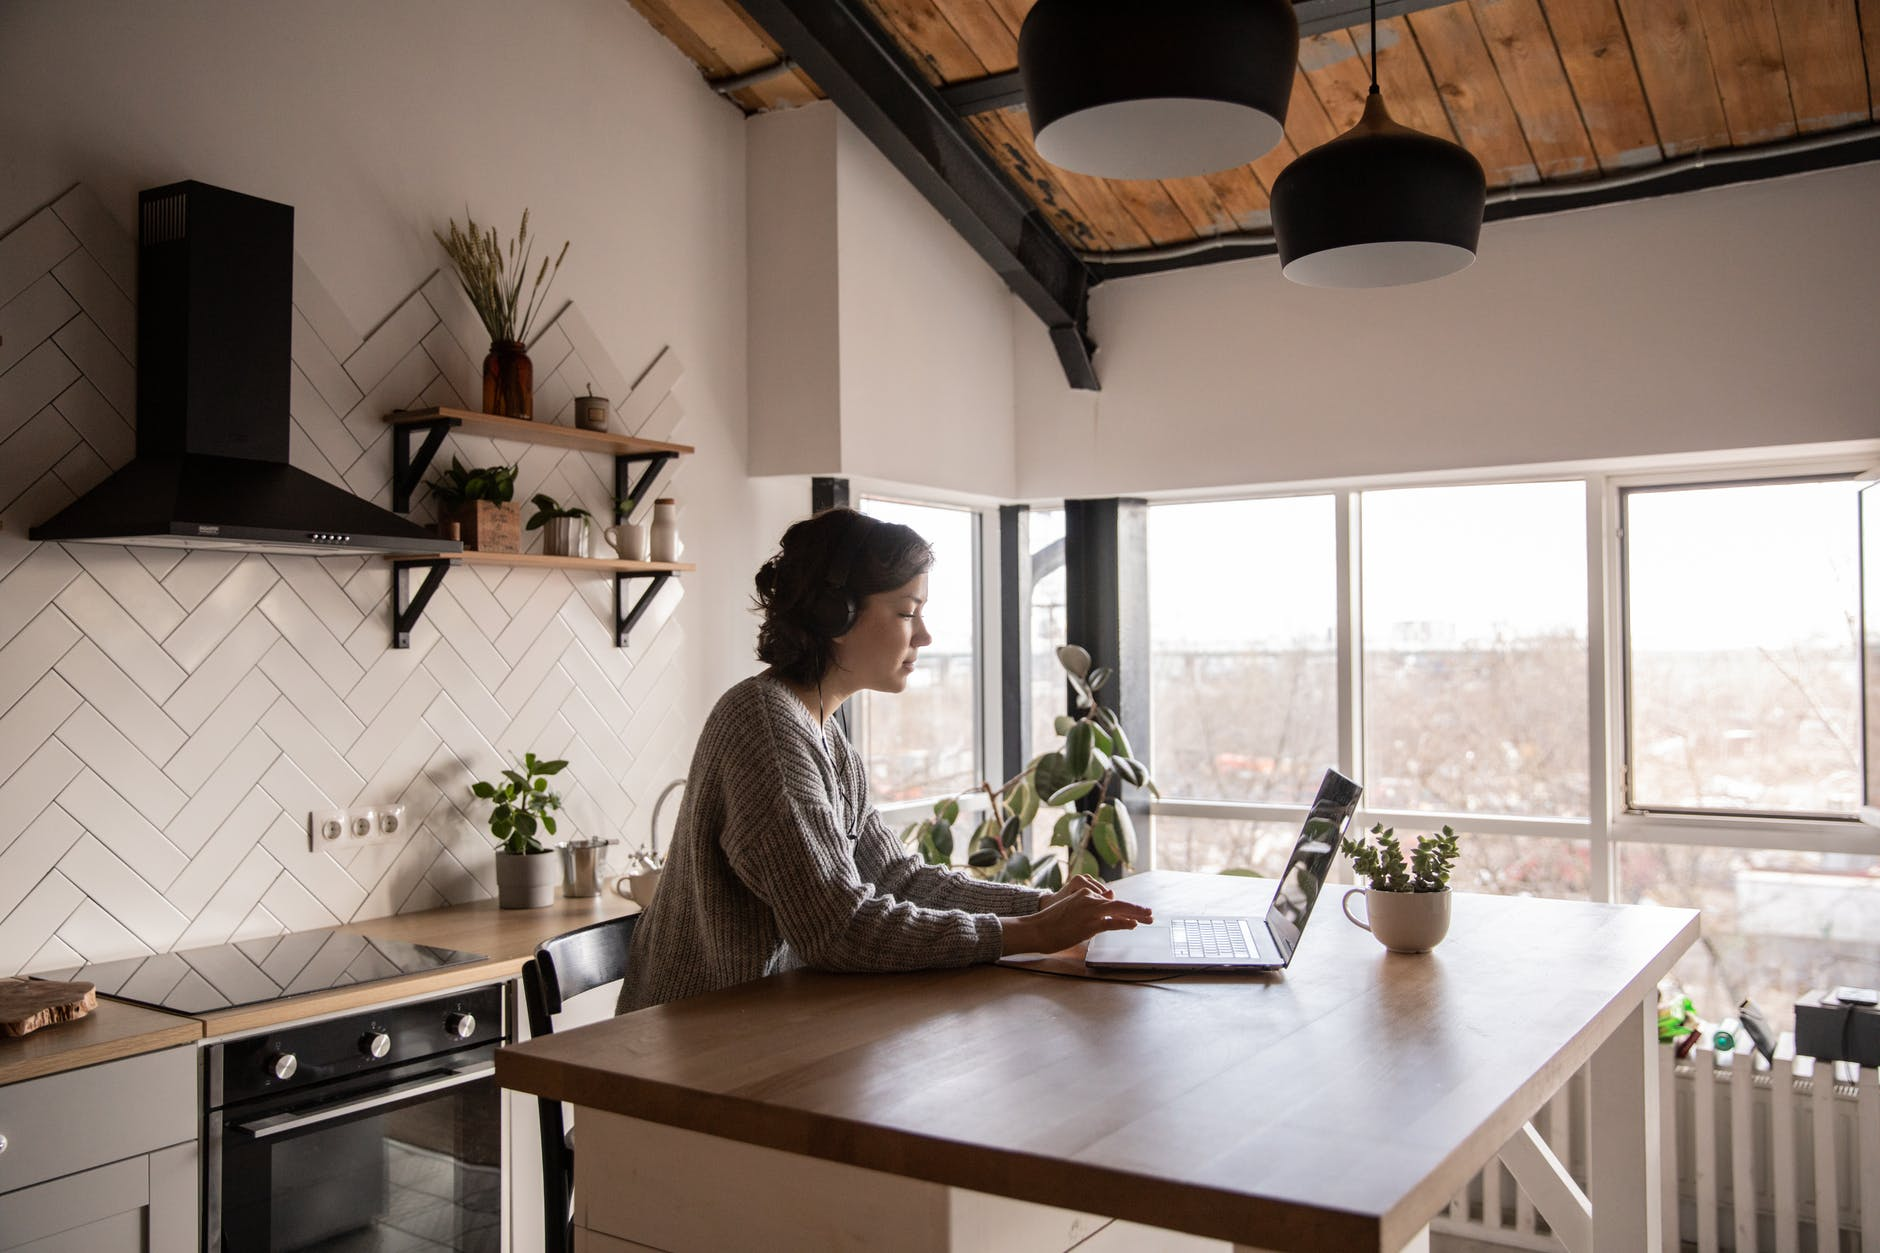 The Real Reasons Why You Should Encourage Remote Work